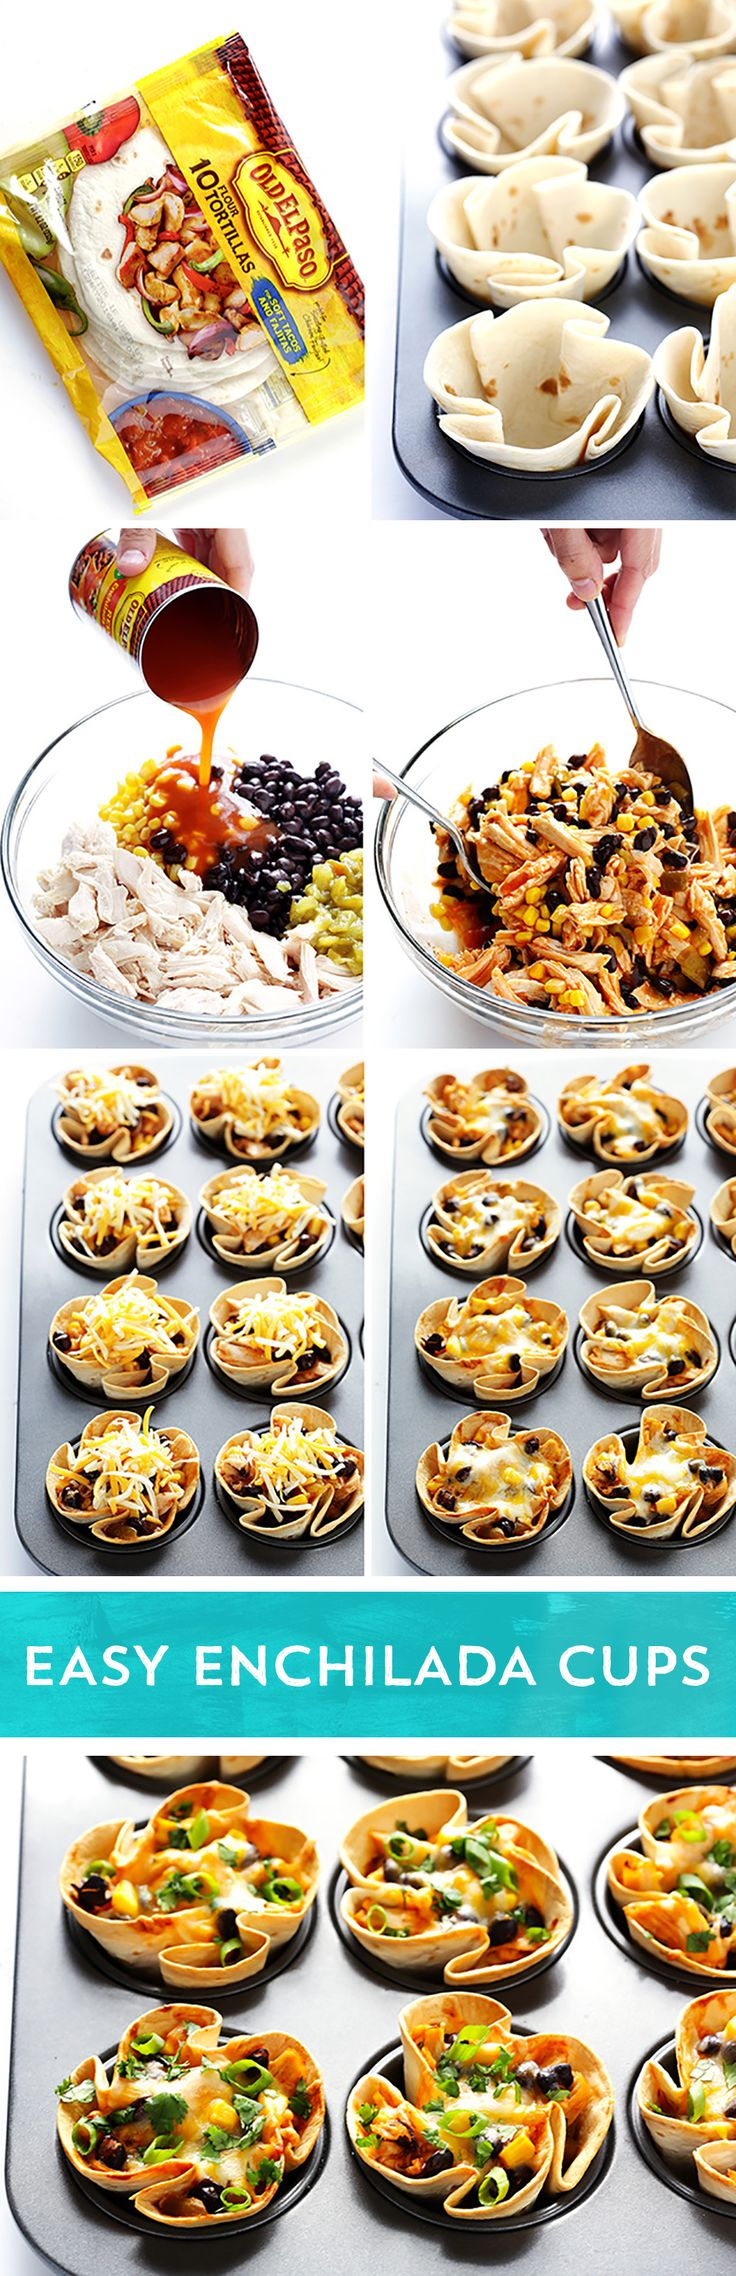 Try something new for taco night! These Easy Enchilada Cups from @Ali Ebright (Gim